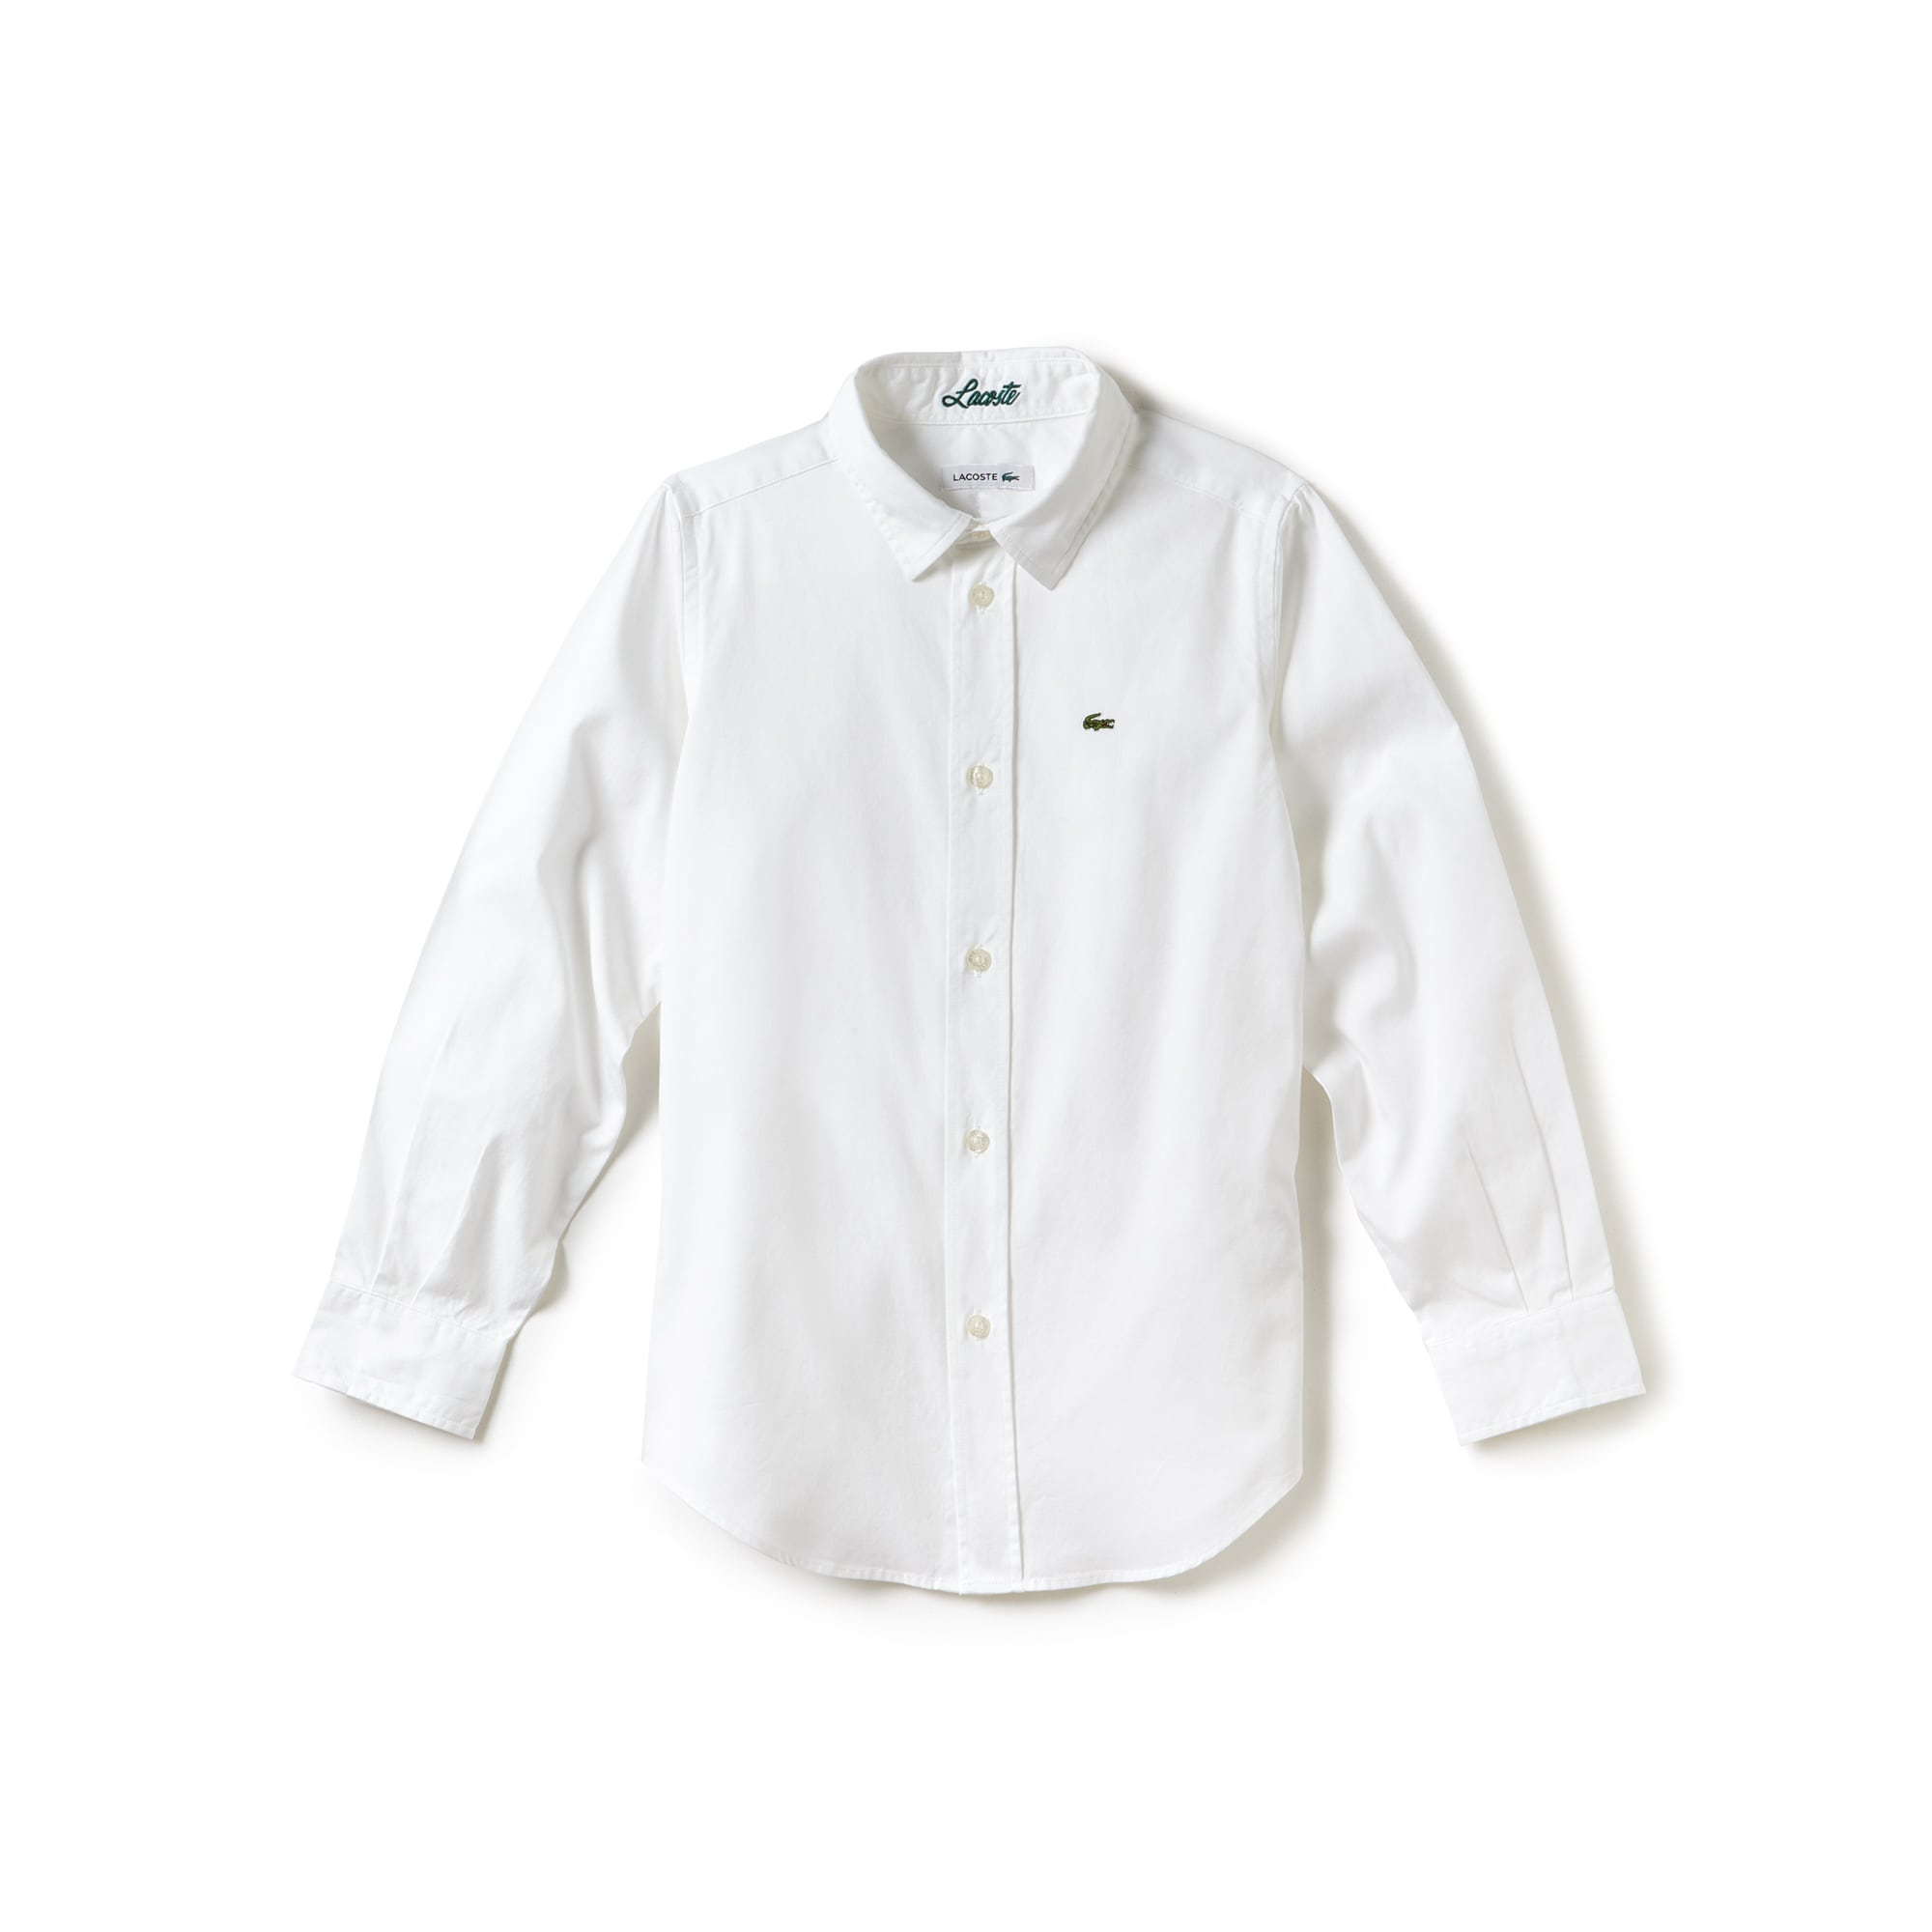 Camicia Kids in cotone Oxford tinta unita